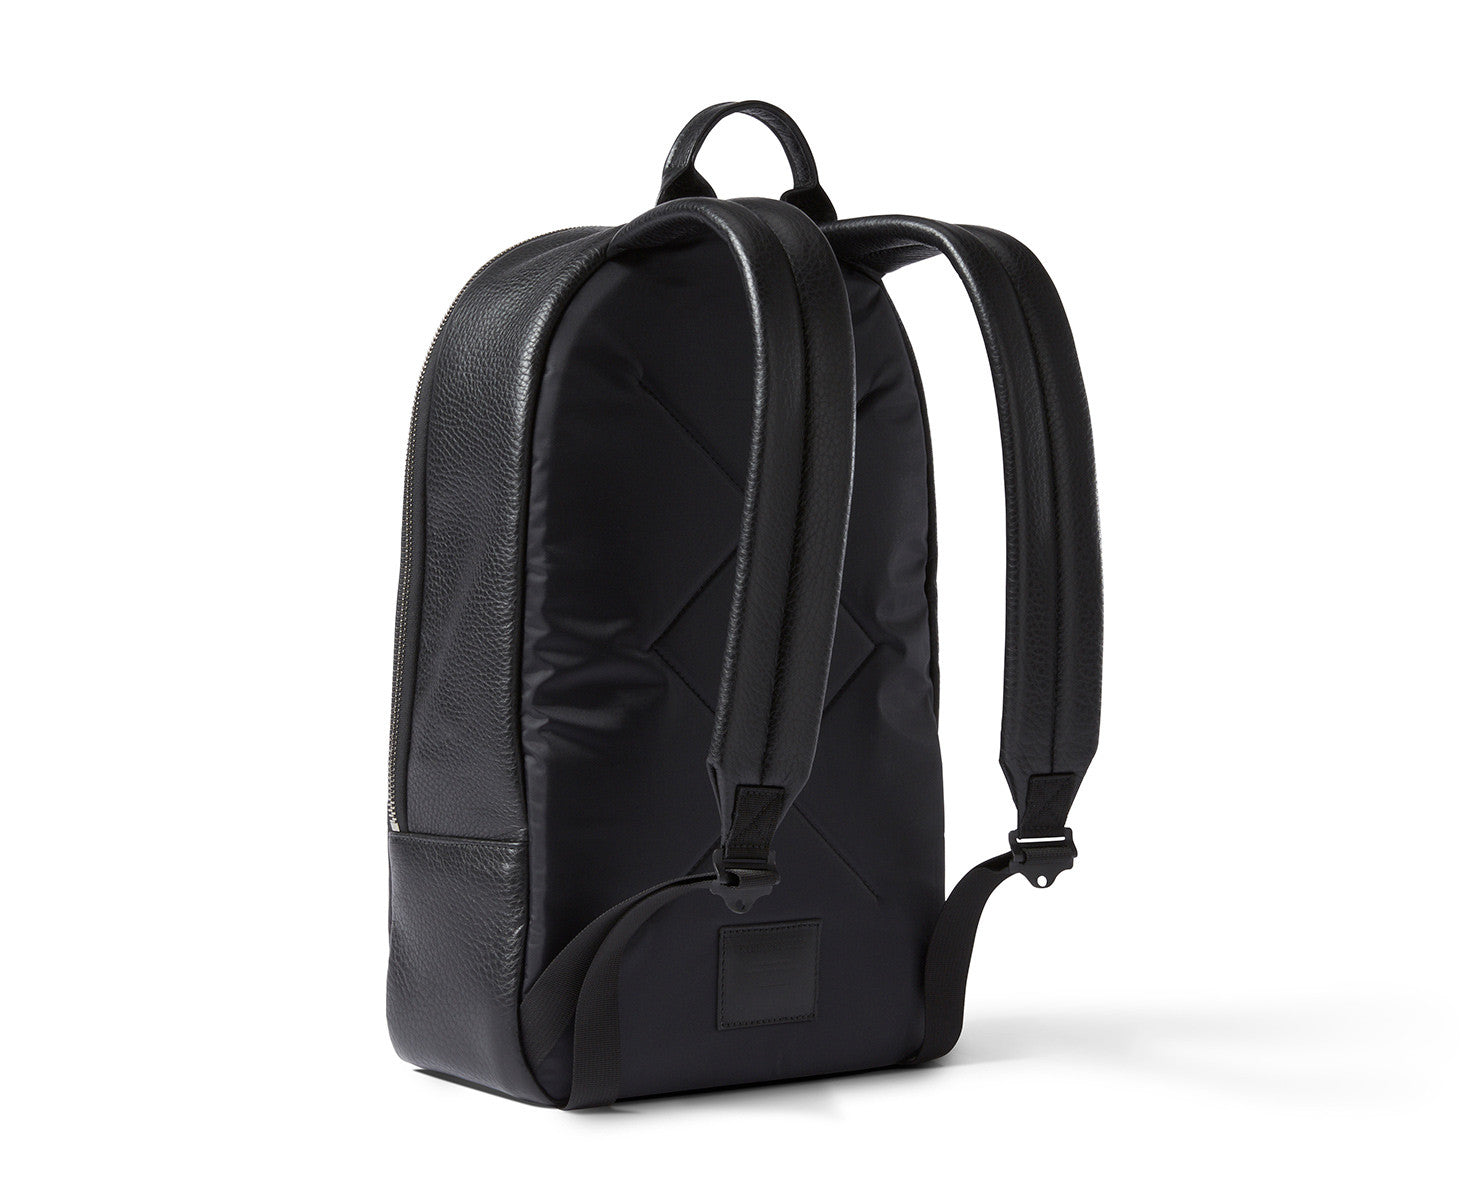 SPECIAL OPS BACKPACK 3.0 | KILLSPENCER® - Black Leather